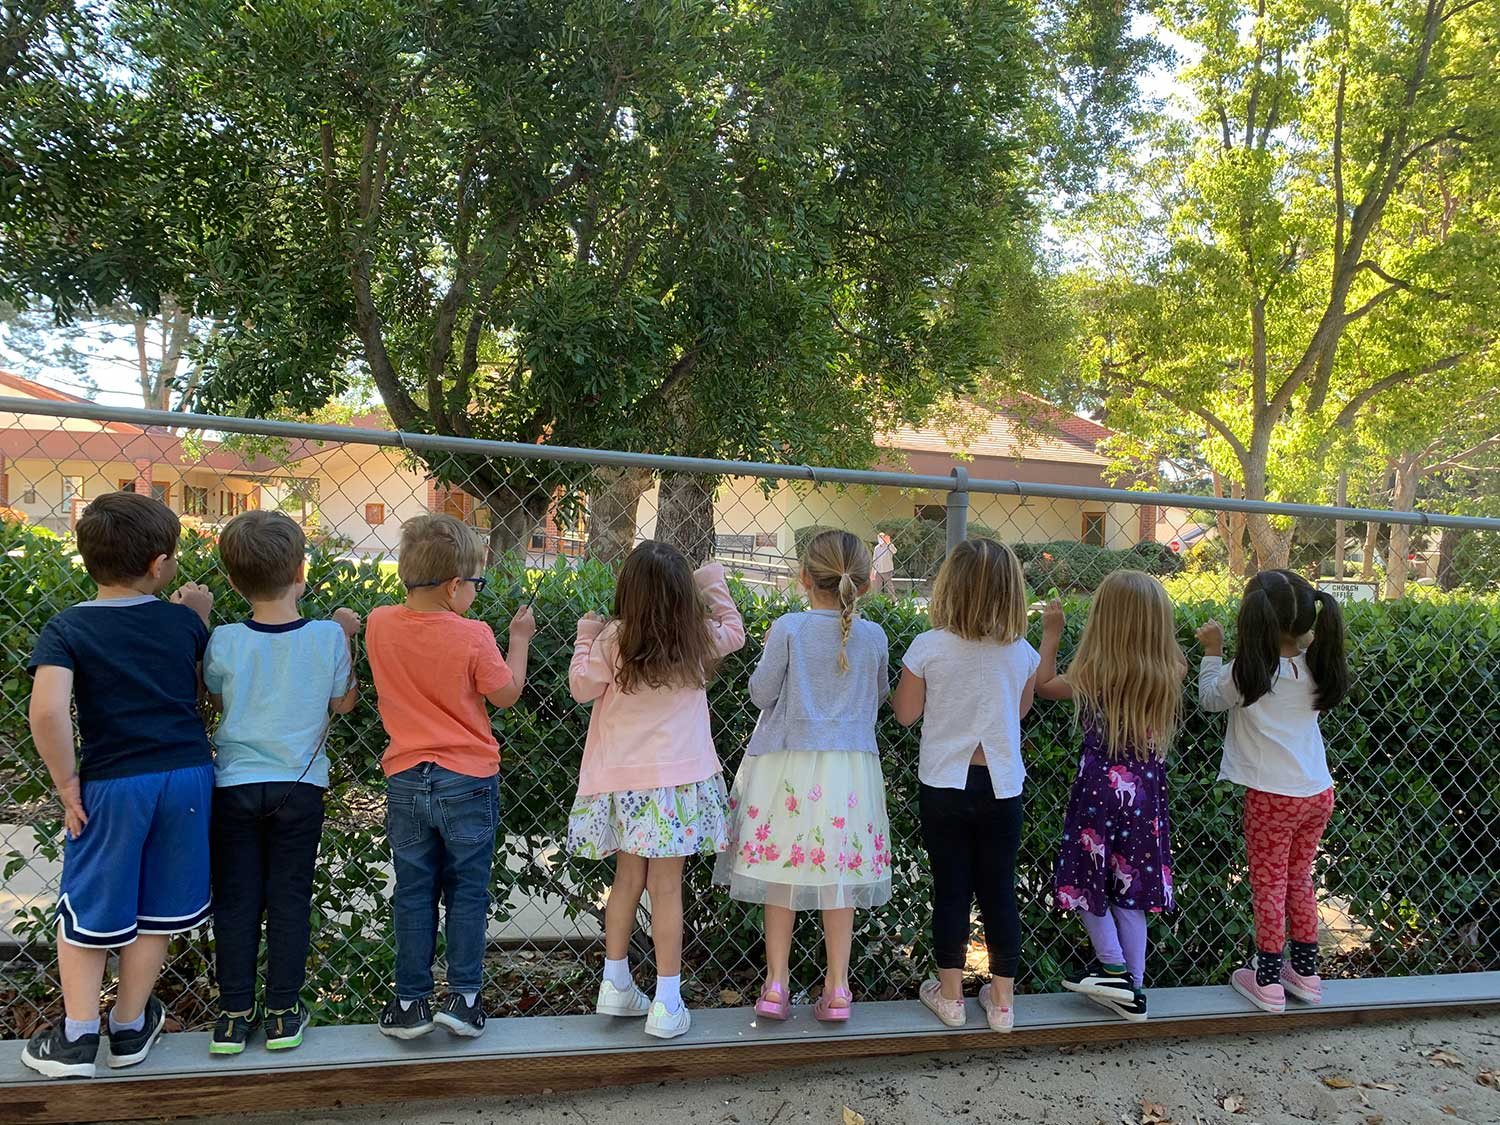 Children Aligned at a Fence Peeking Out